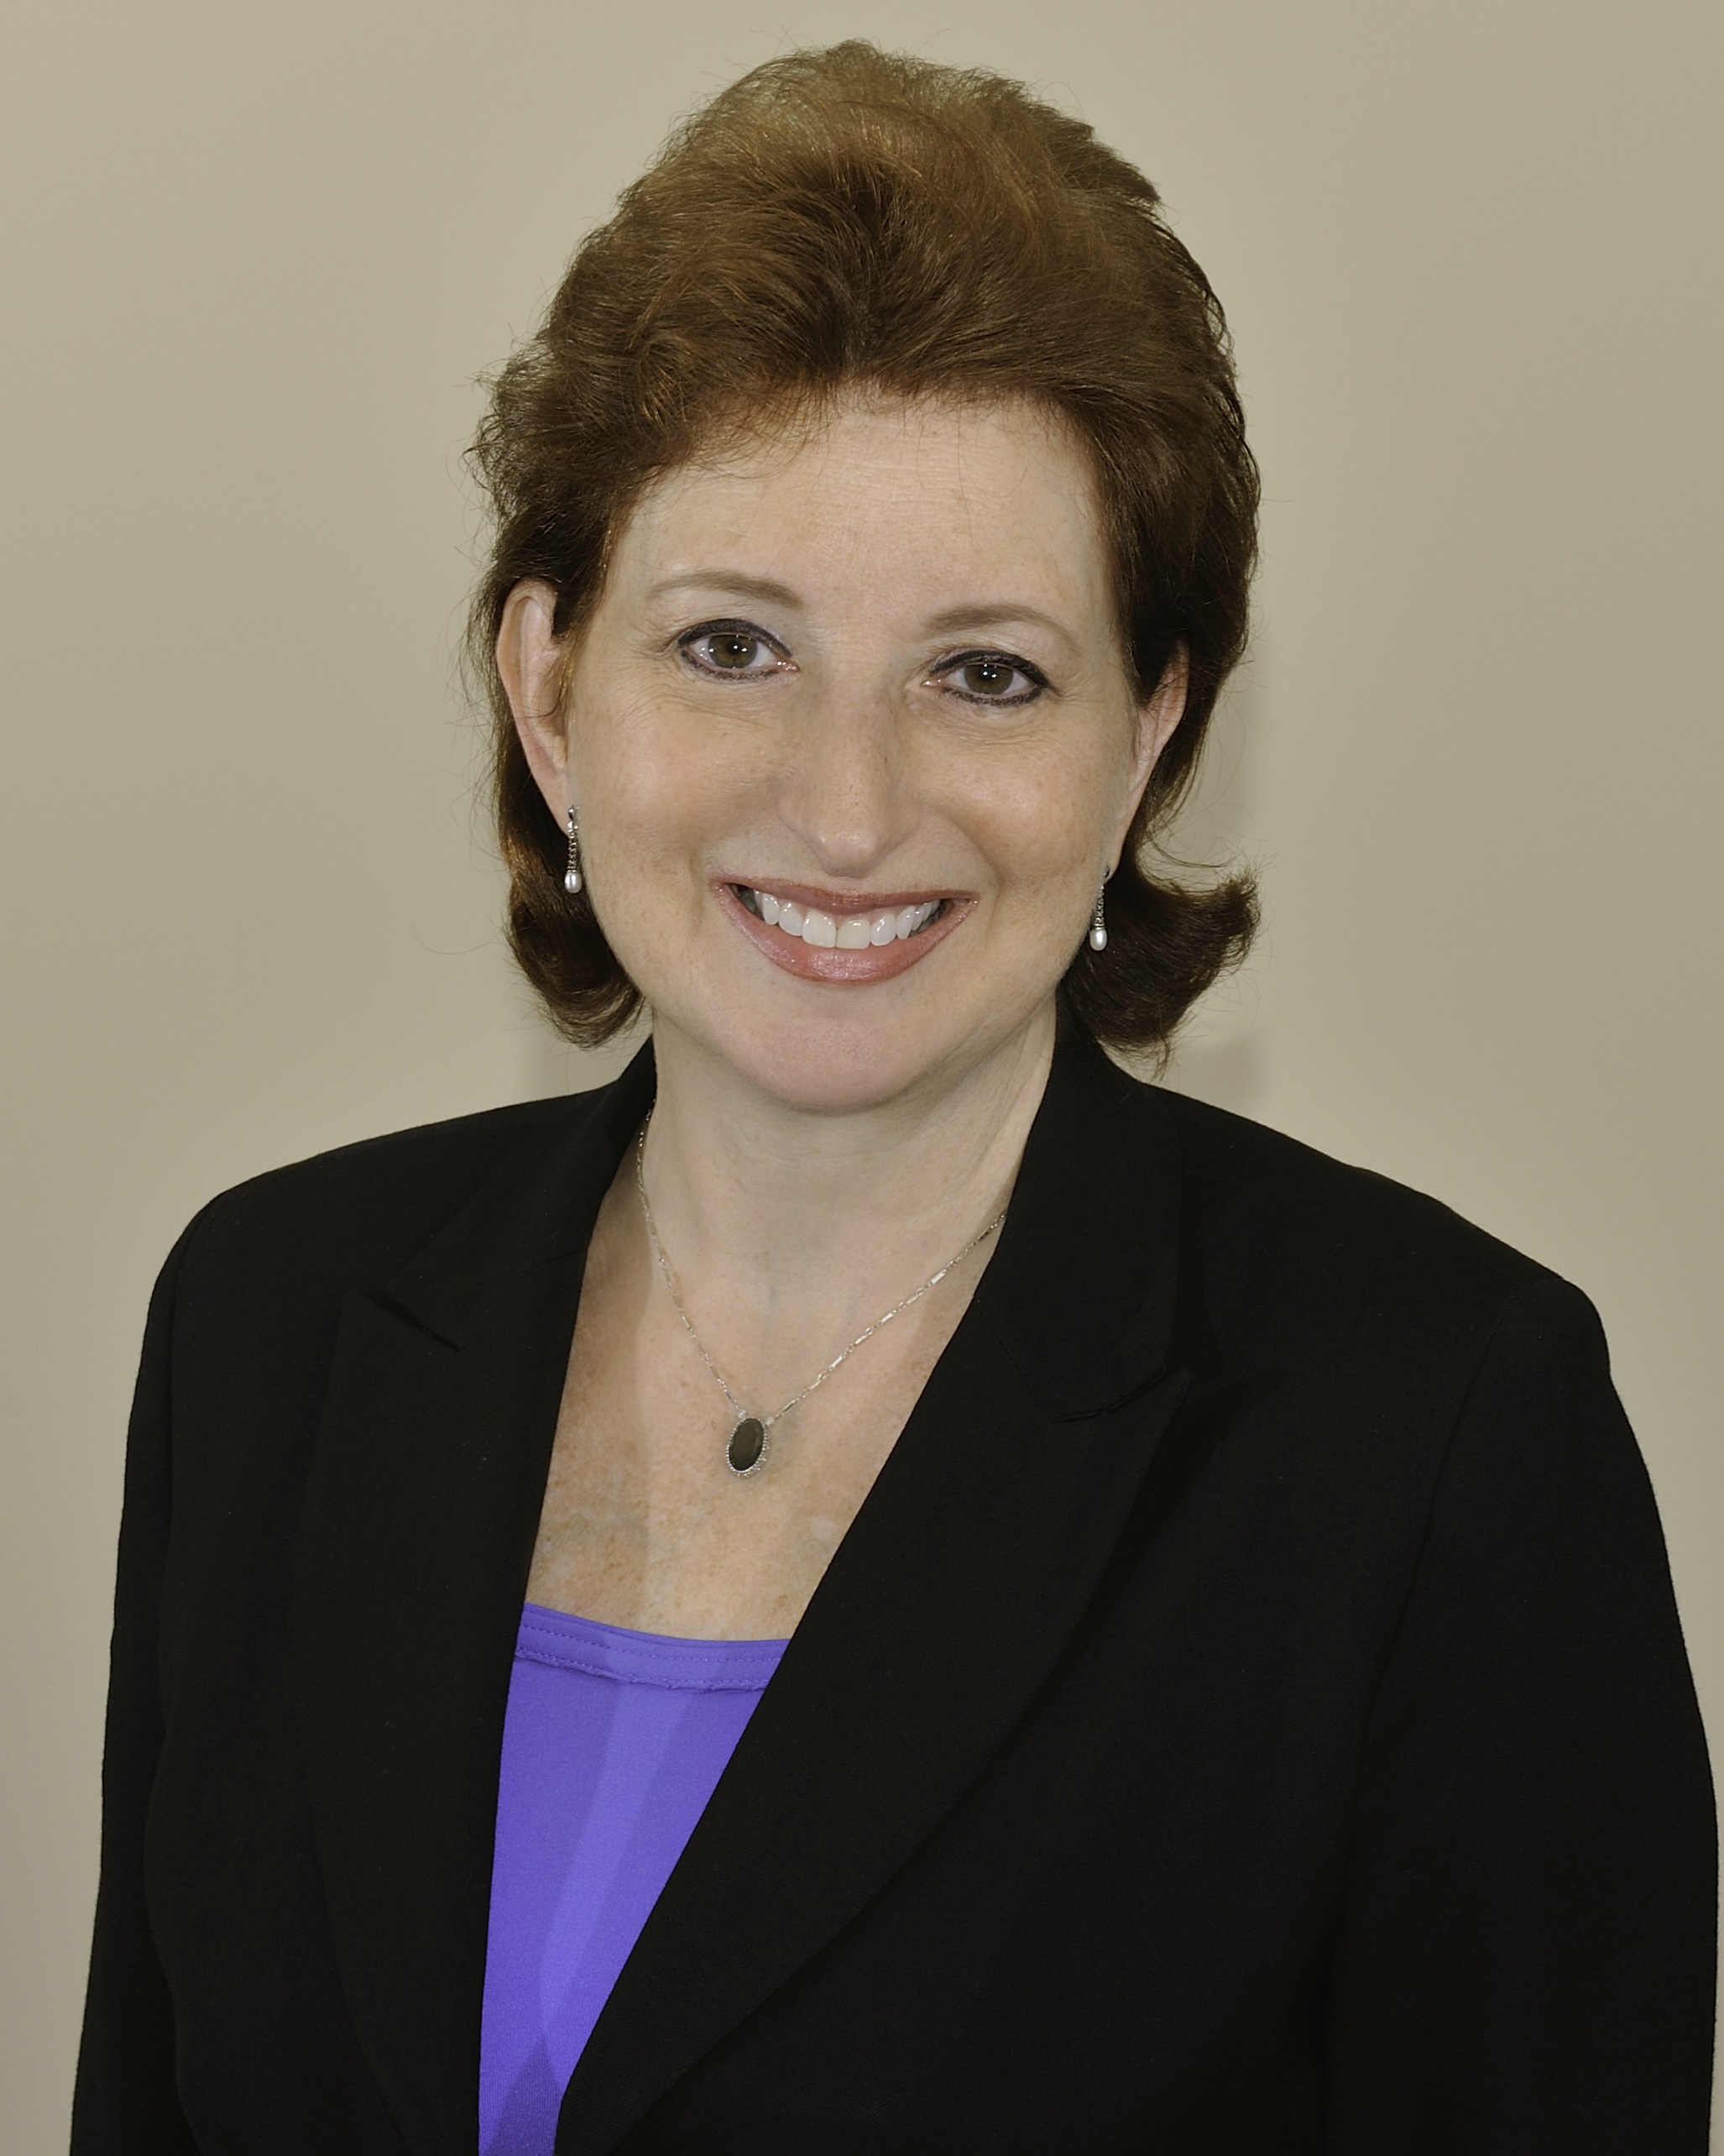 Emily Sanders, Managing Director of United Capital Atlanta.